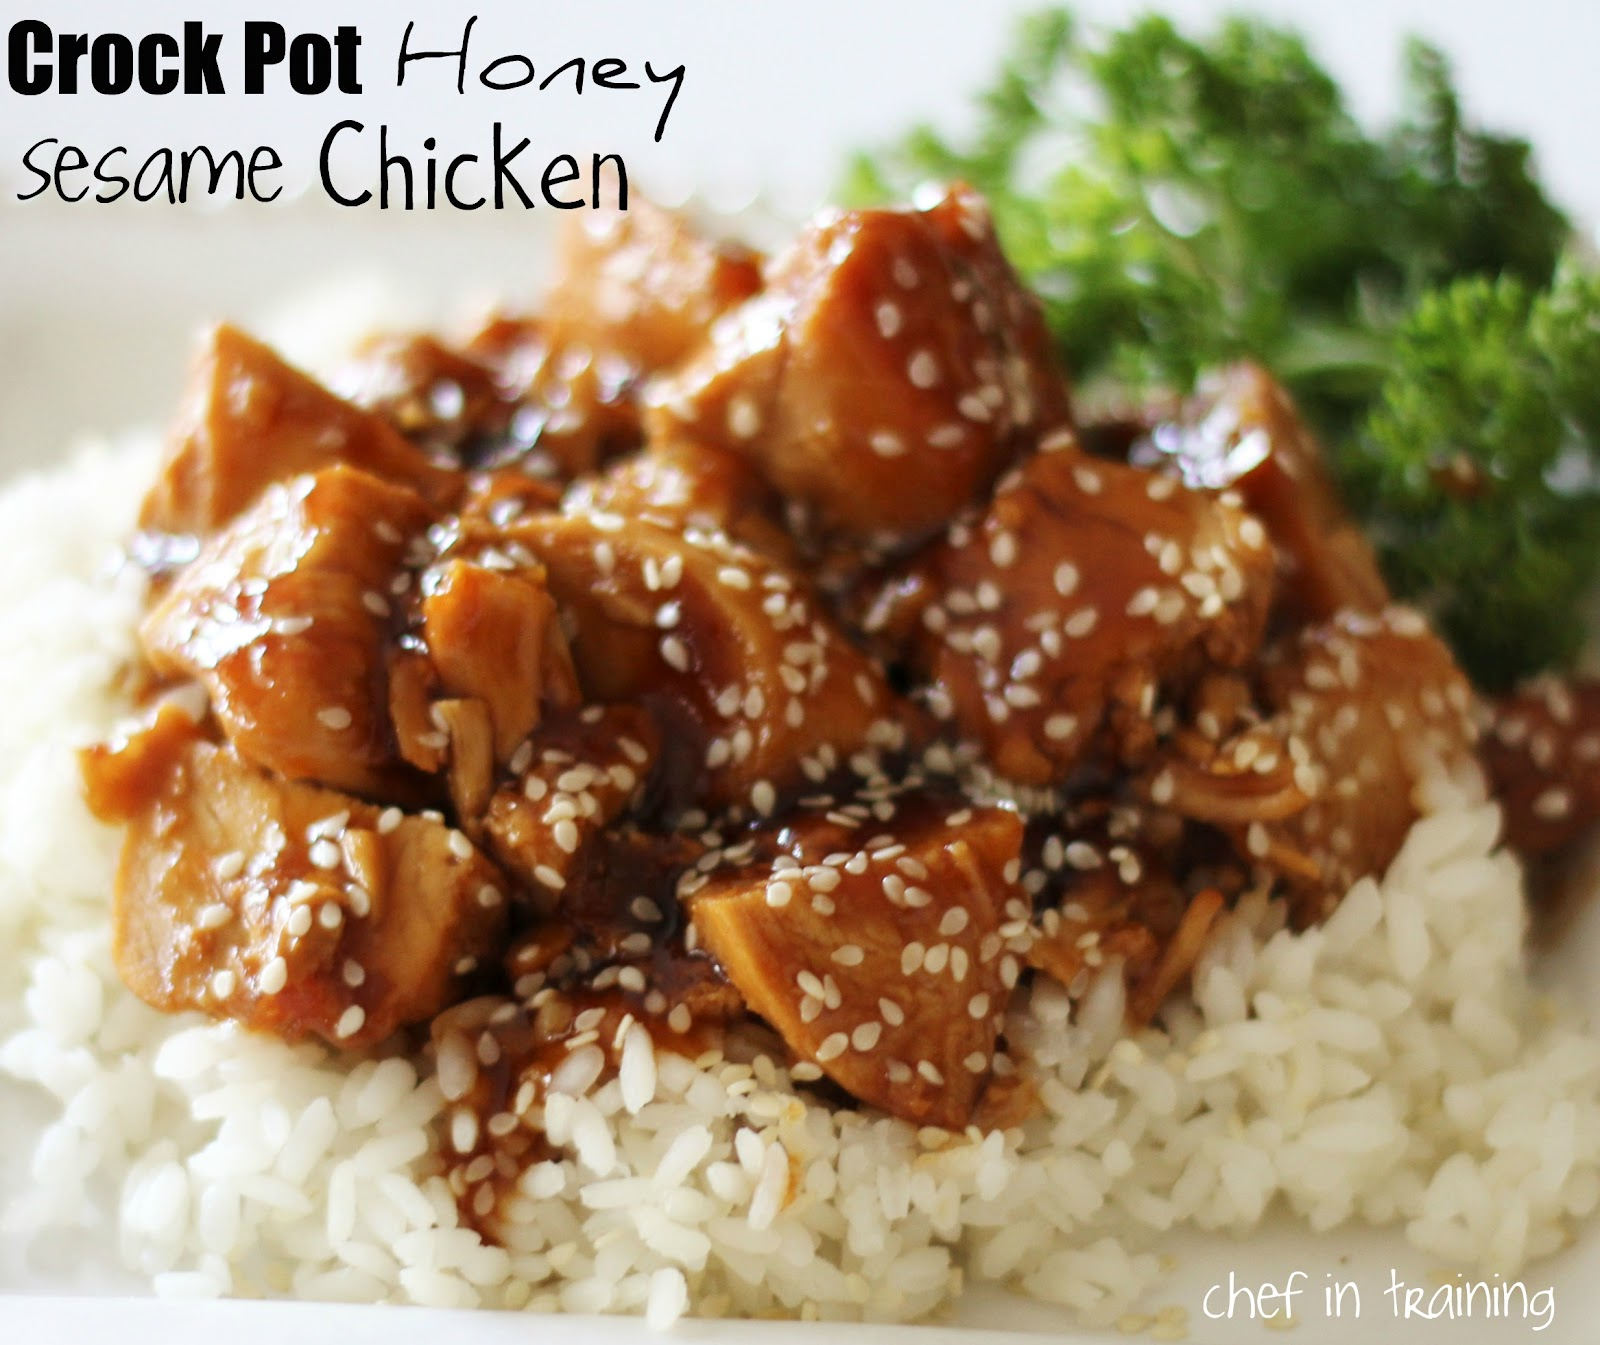 Crock Pot Honey Sesame Chicken Chef In Training